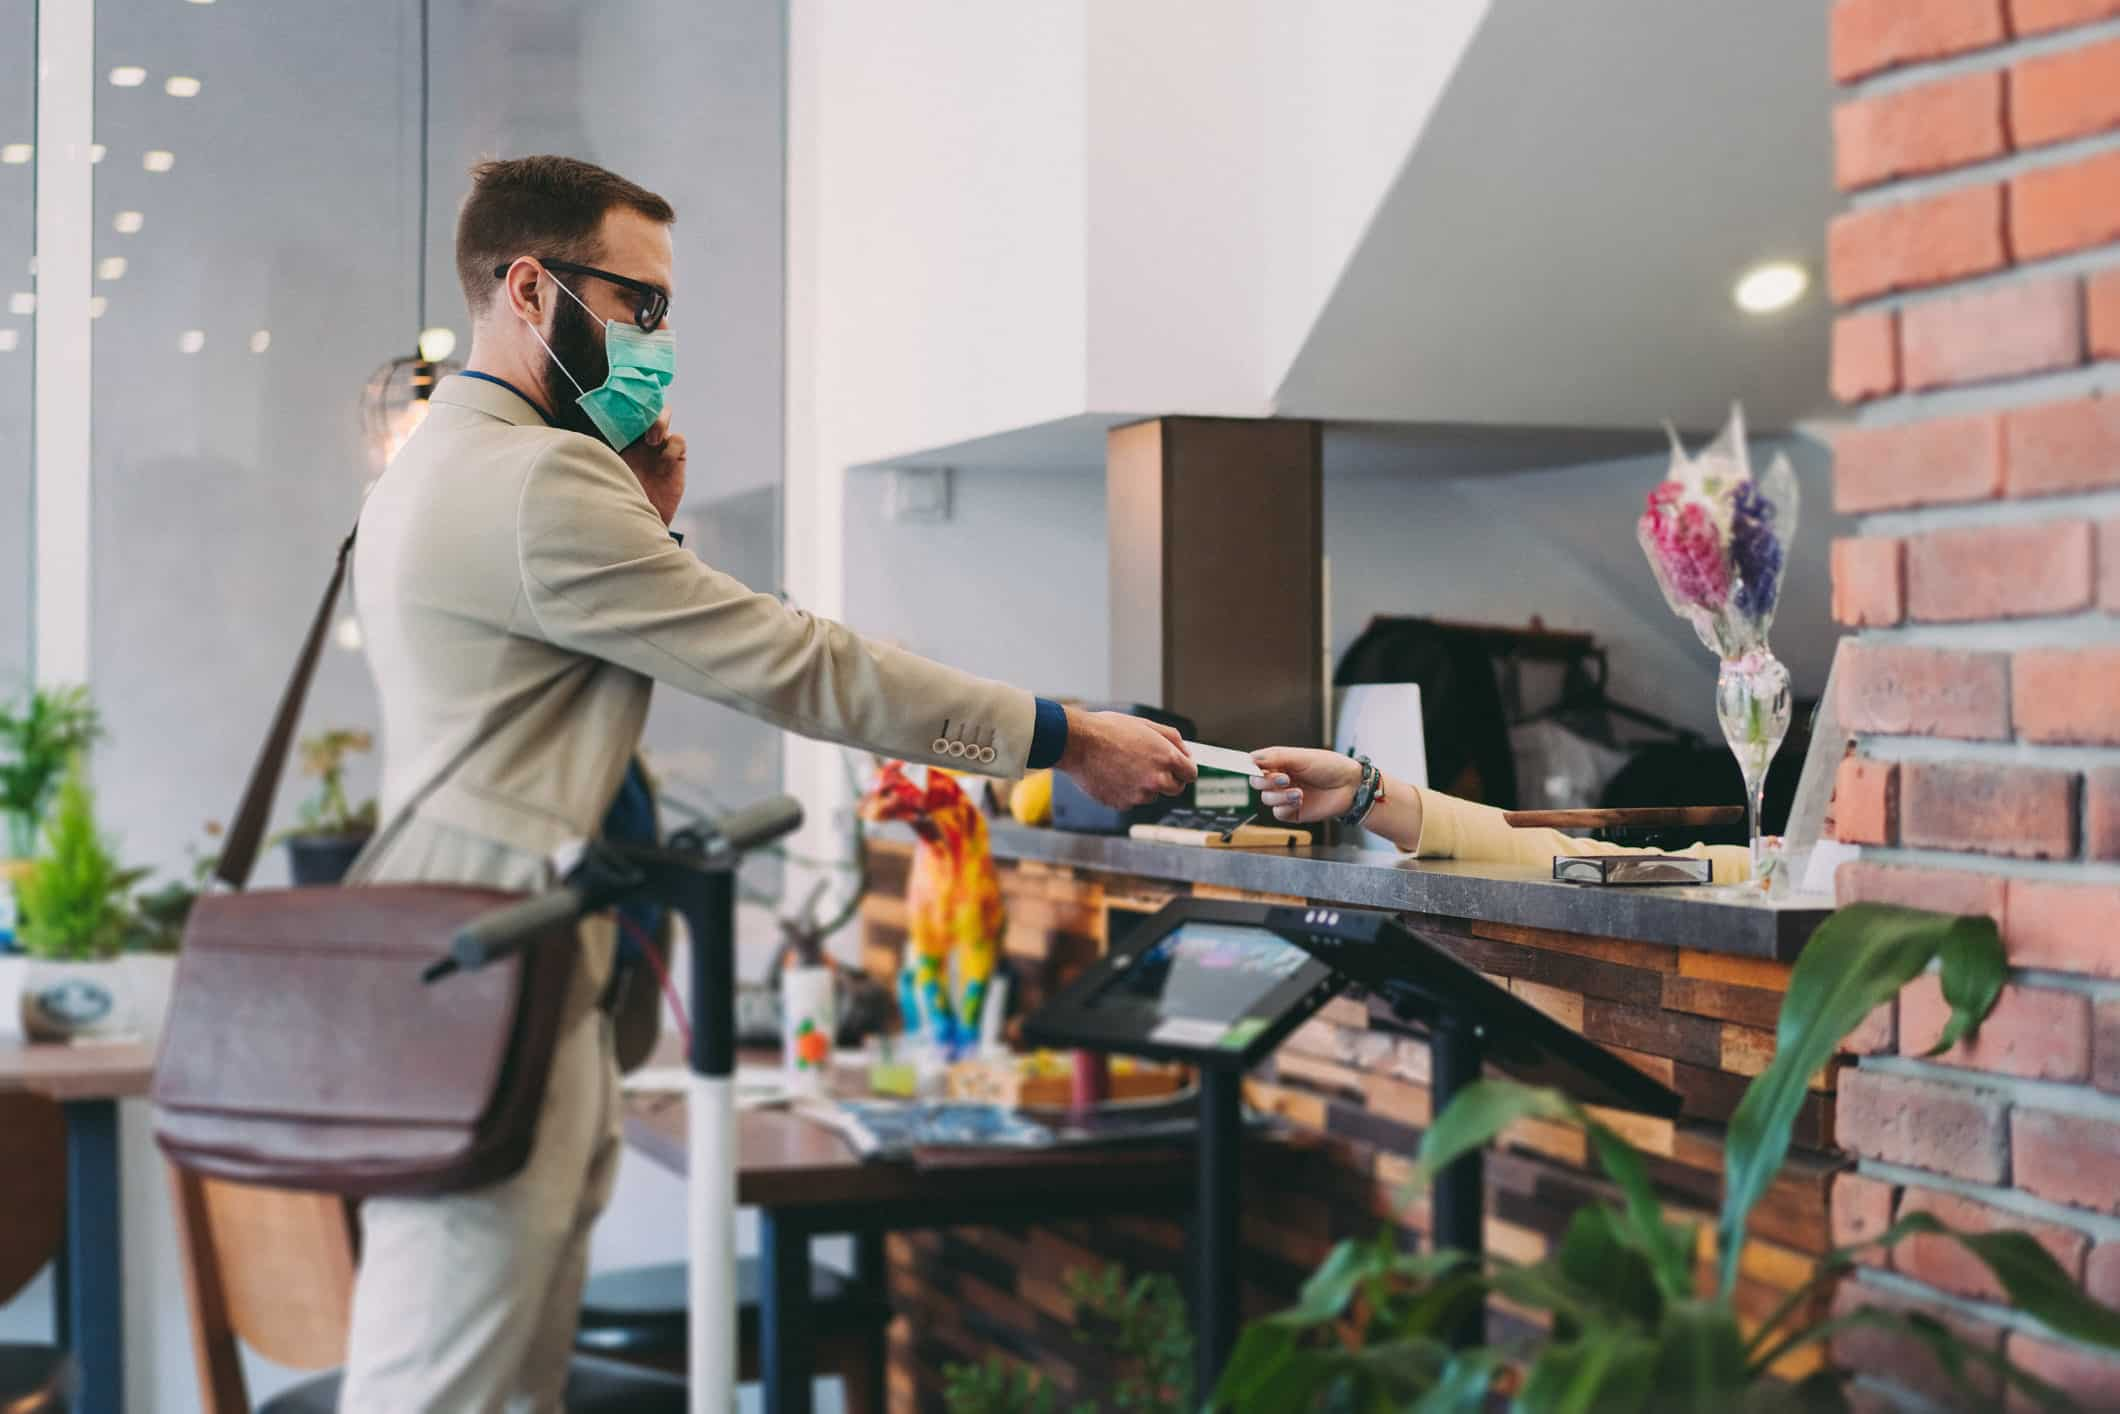 Man wearing a mask checking in to a hotel